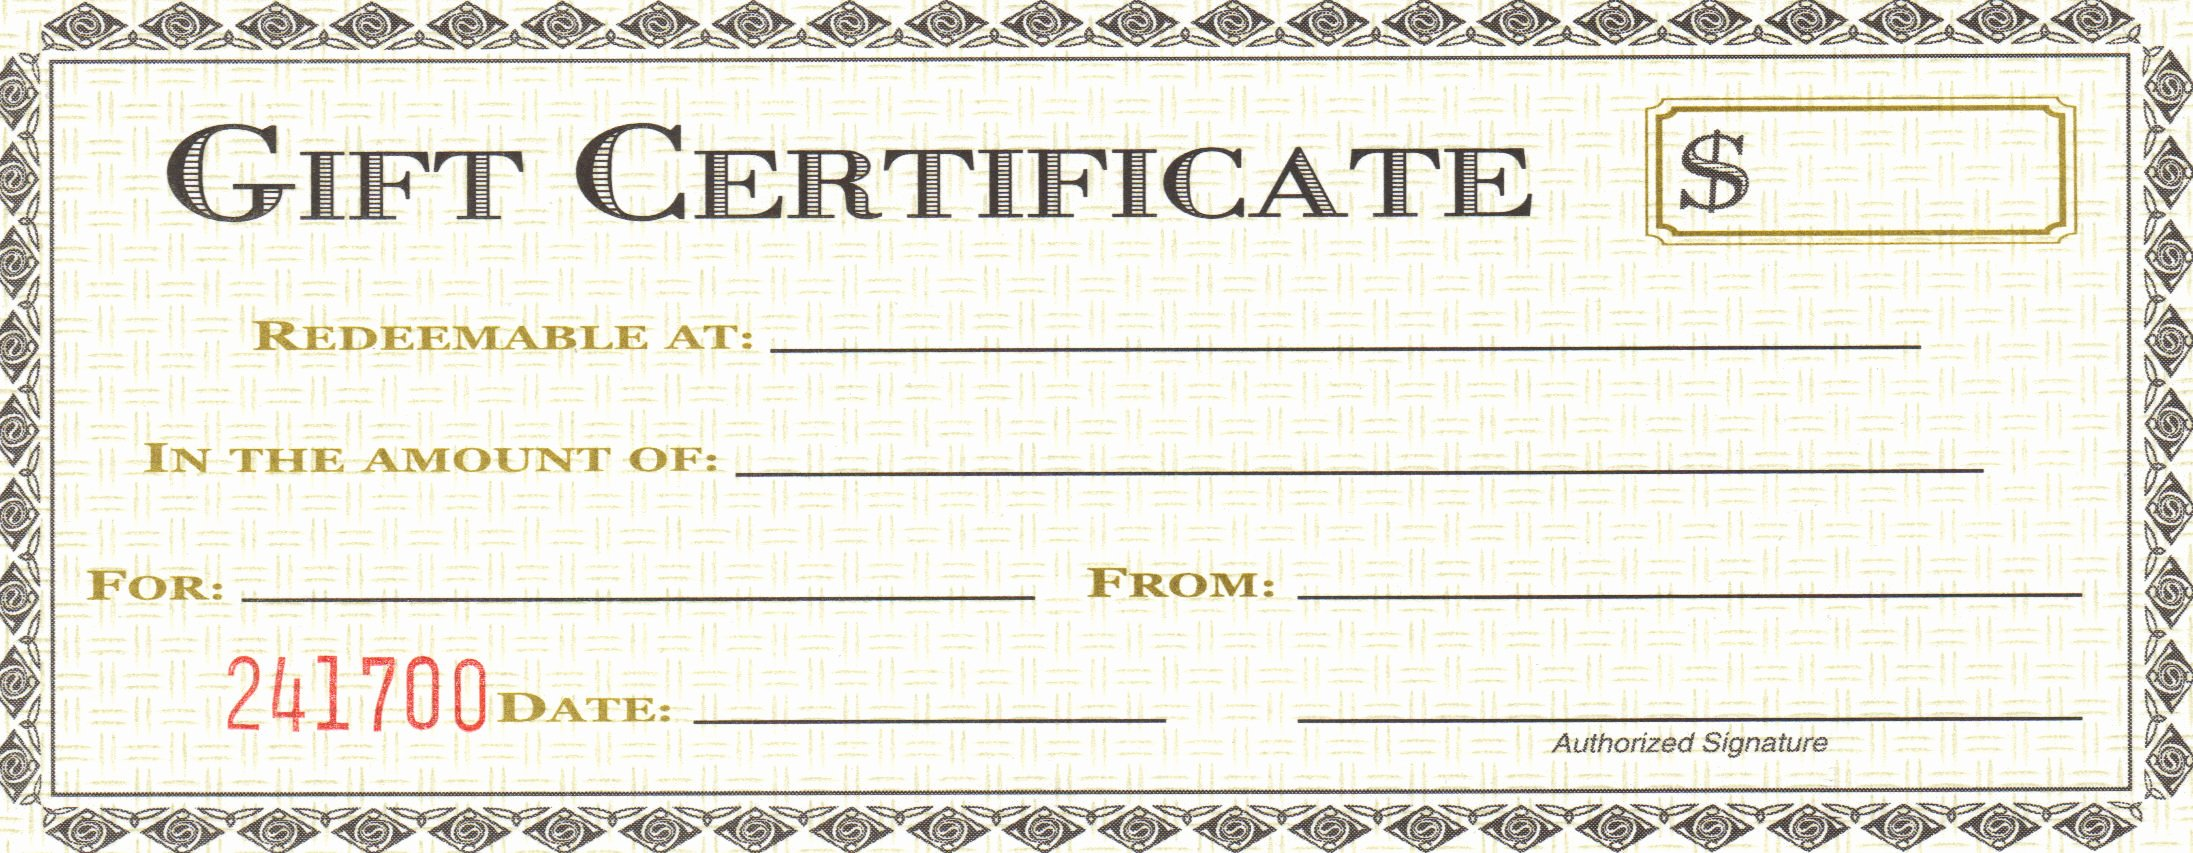 Gift Certificate Wording Awesome 18 Gift Certificate Templates Excel Pdf formats